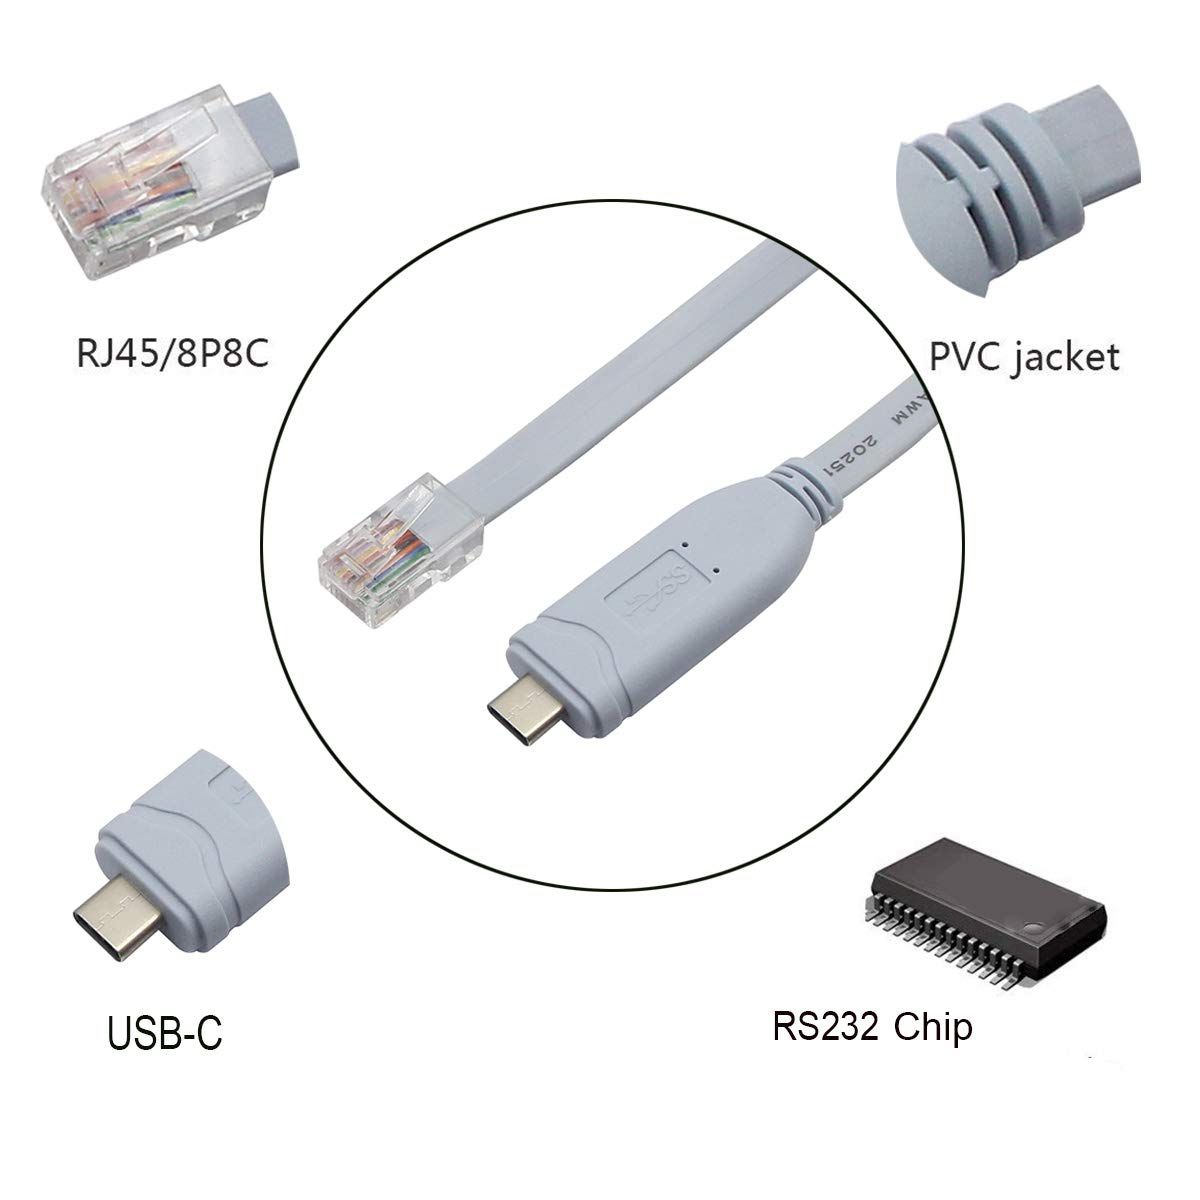 USB-C Console Cable with FTDI Chip,USB Type C to RJ45 Console Cable for Routers//Windows 7,8 //Switches//PCs//Laptops SUB-C 6FT 1.8m